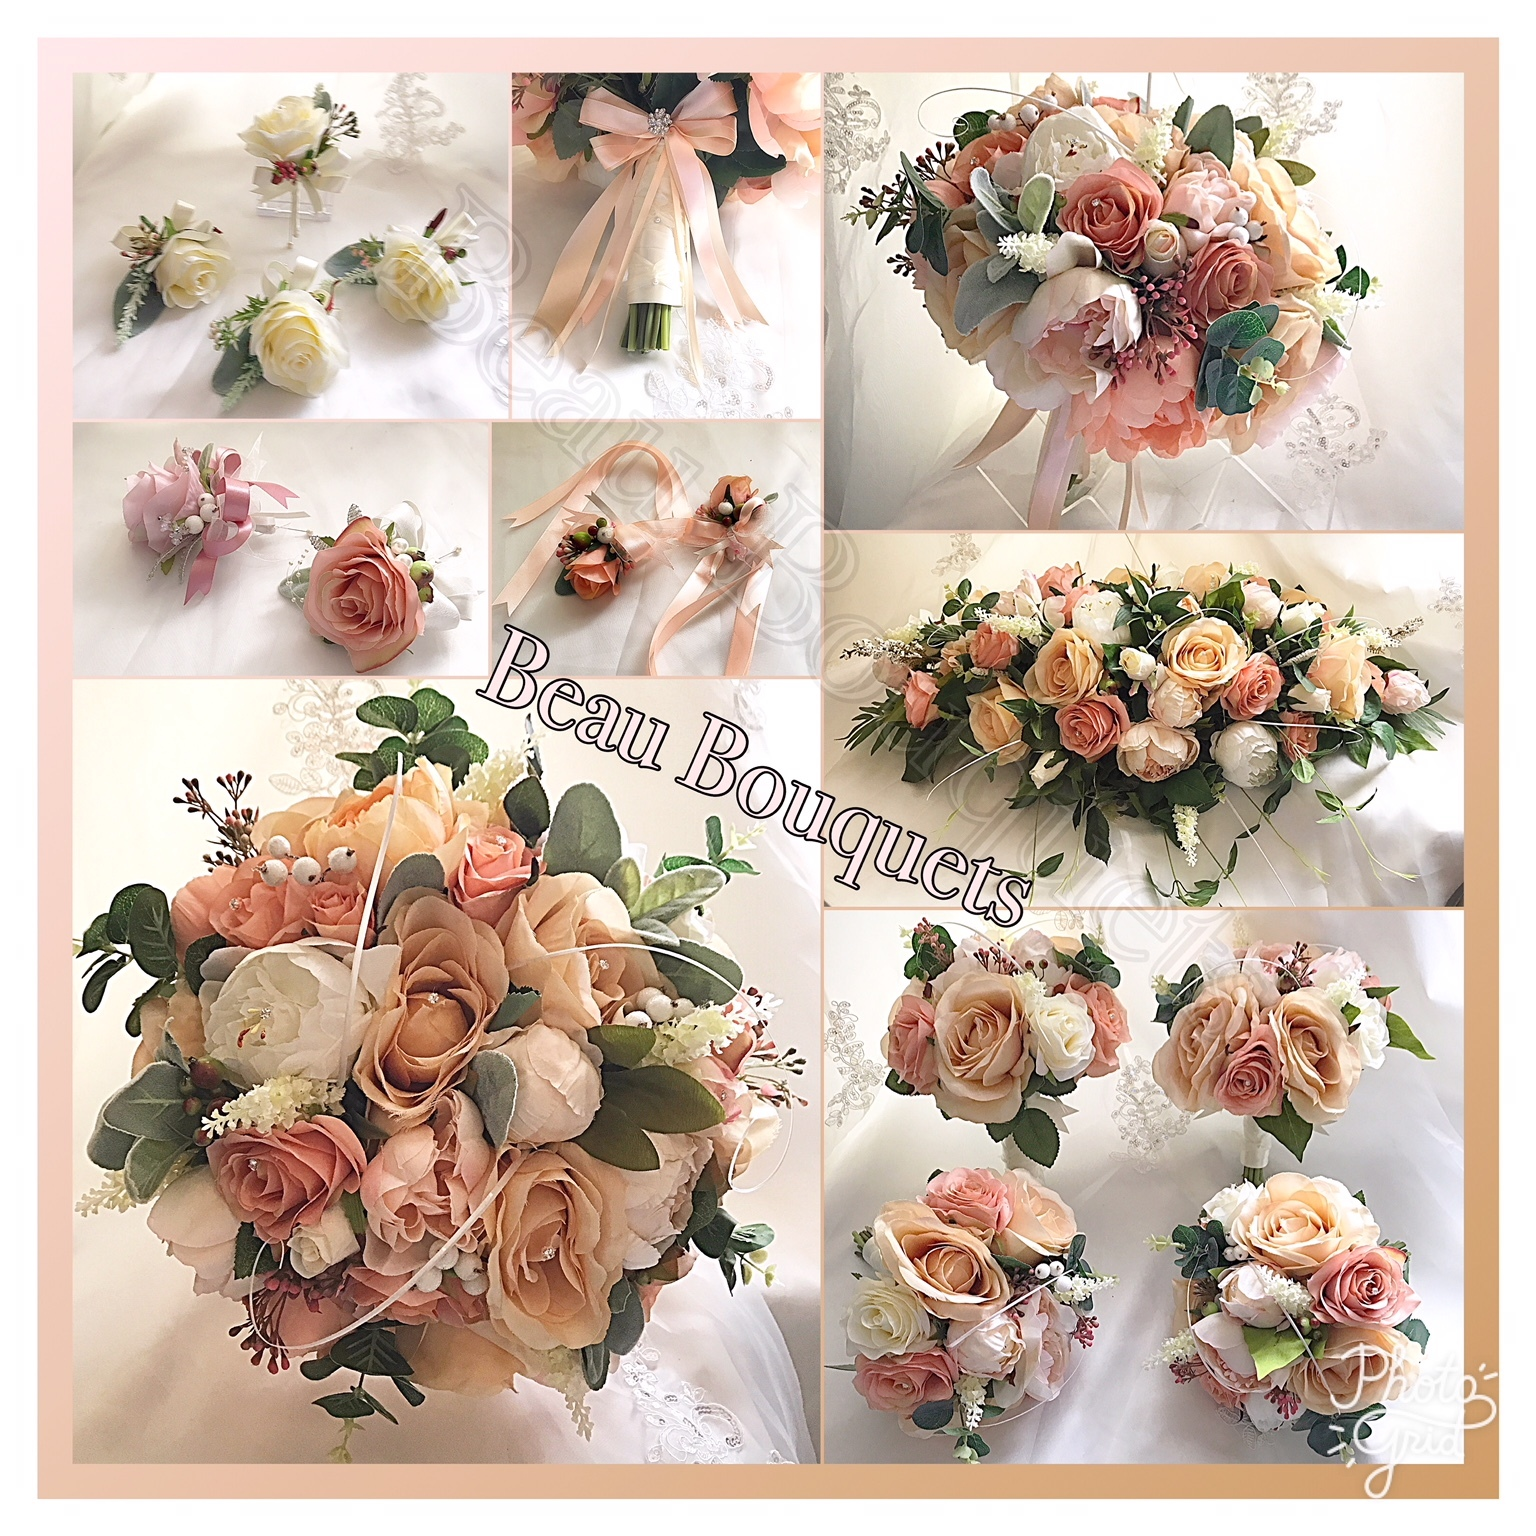 DELIGHT - Peony and rose bride bouquet package peach cream champagne  peach cream champagne roses peonies hypericum and grass detail